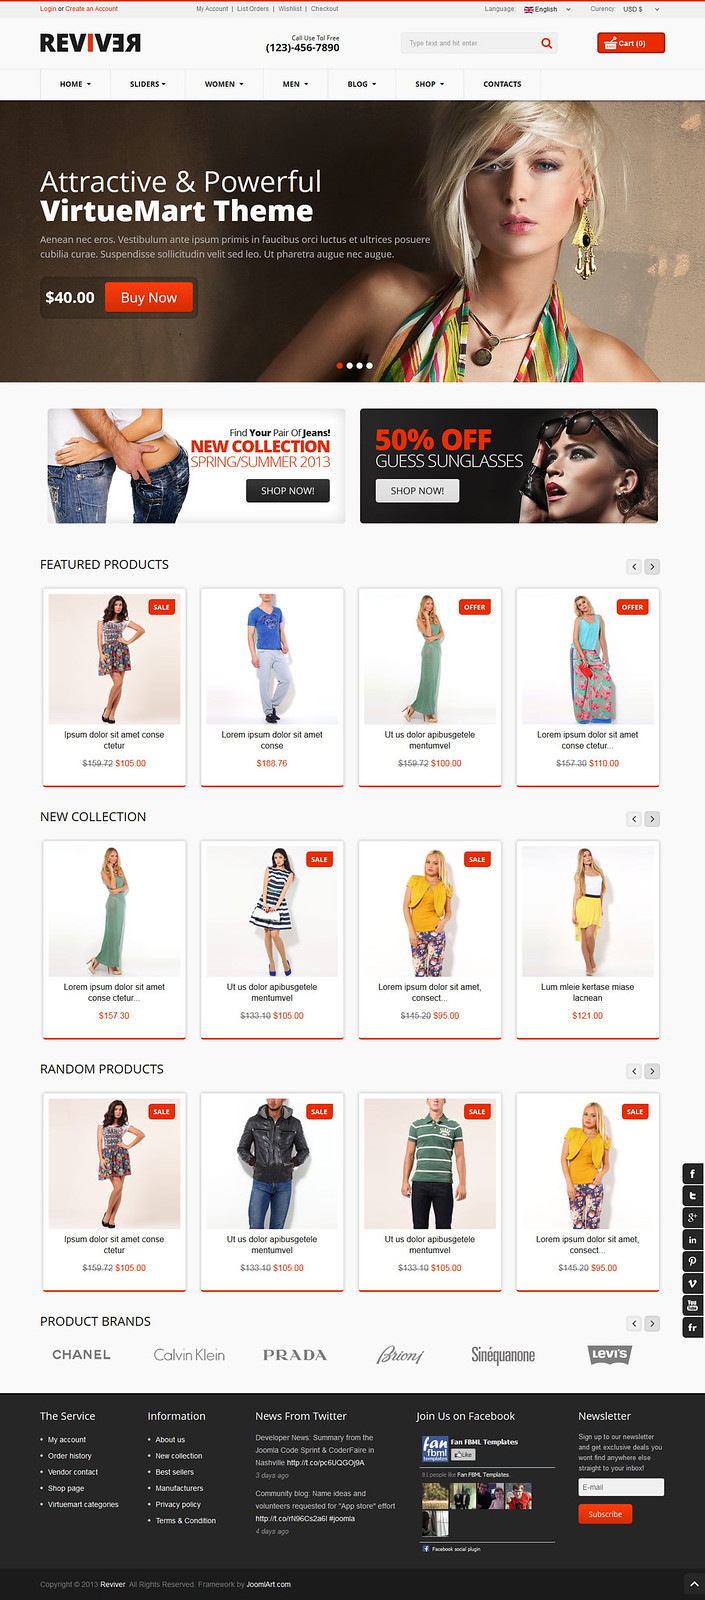 Reviver - Responsive Multipurpose VirtueMart Theme